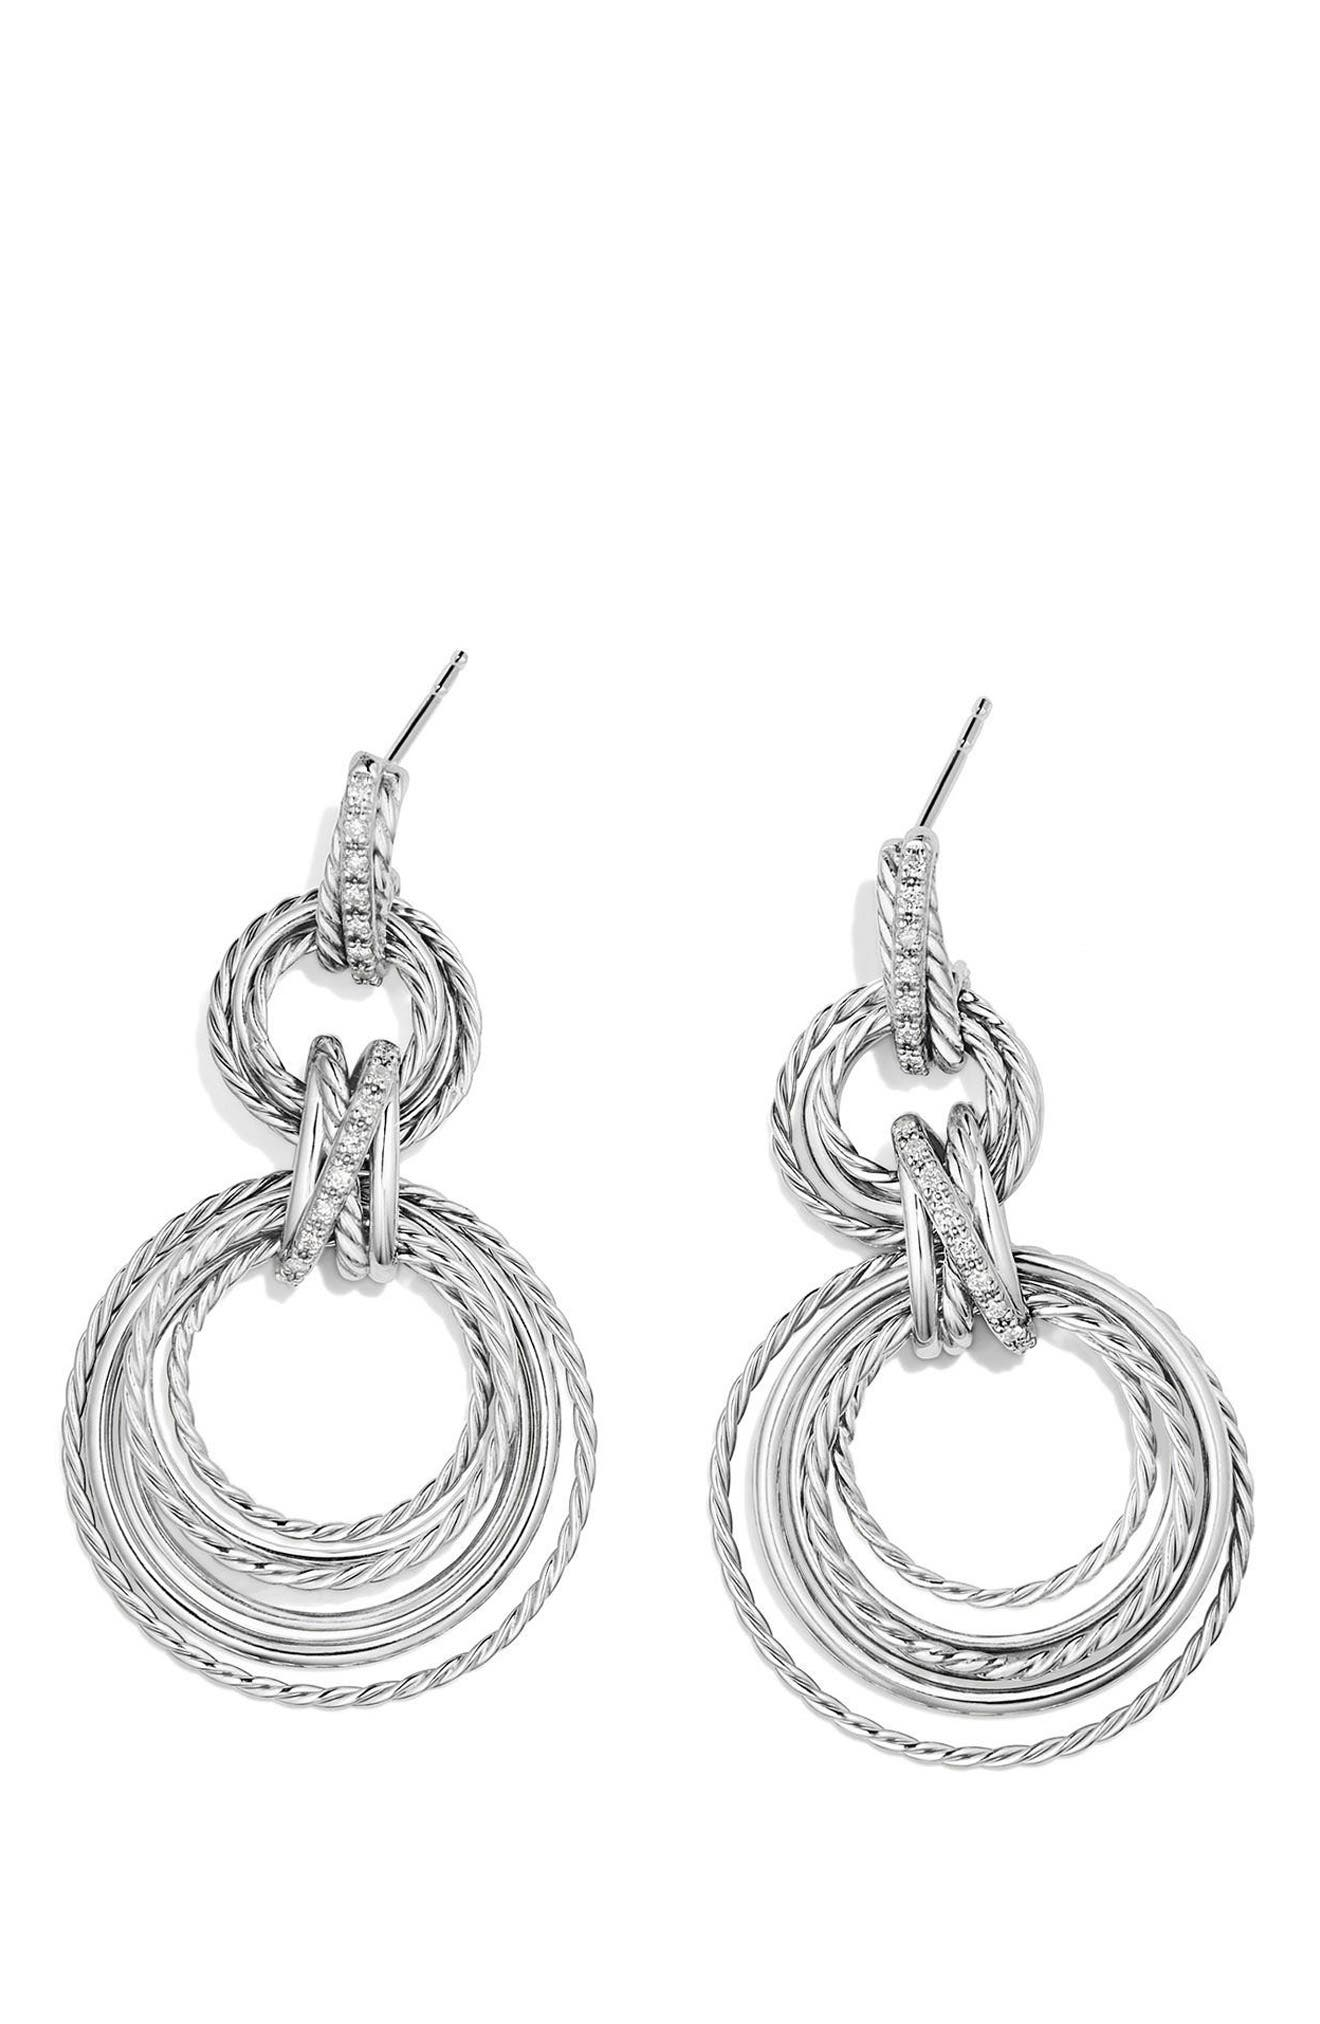 Crossover Double Drop Earrings with Diamonds,                             Alternate thumbnail 2, color,                             SILVER